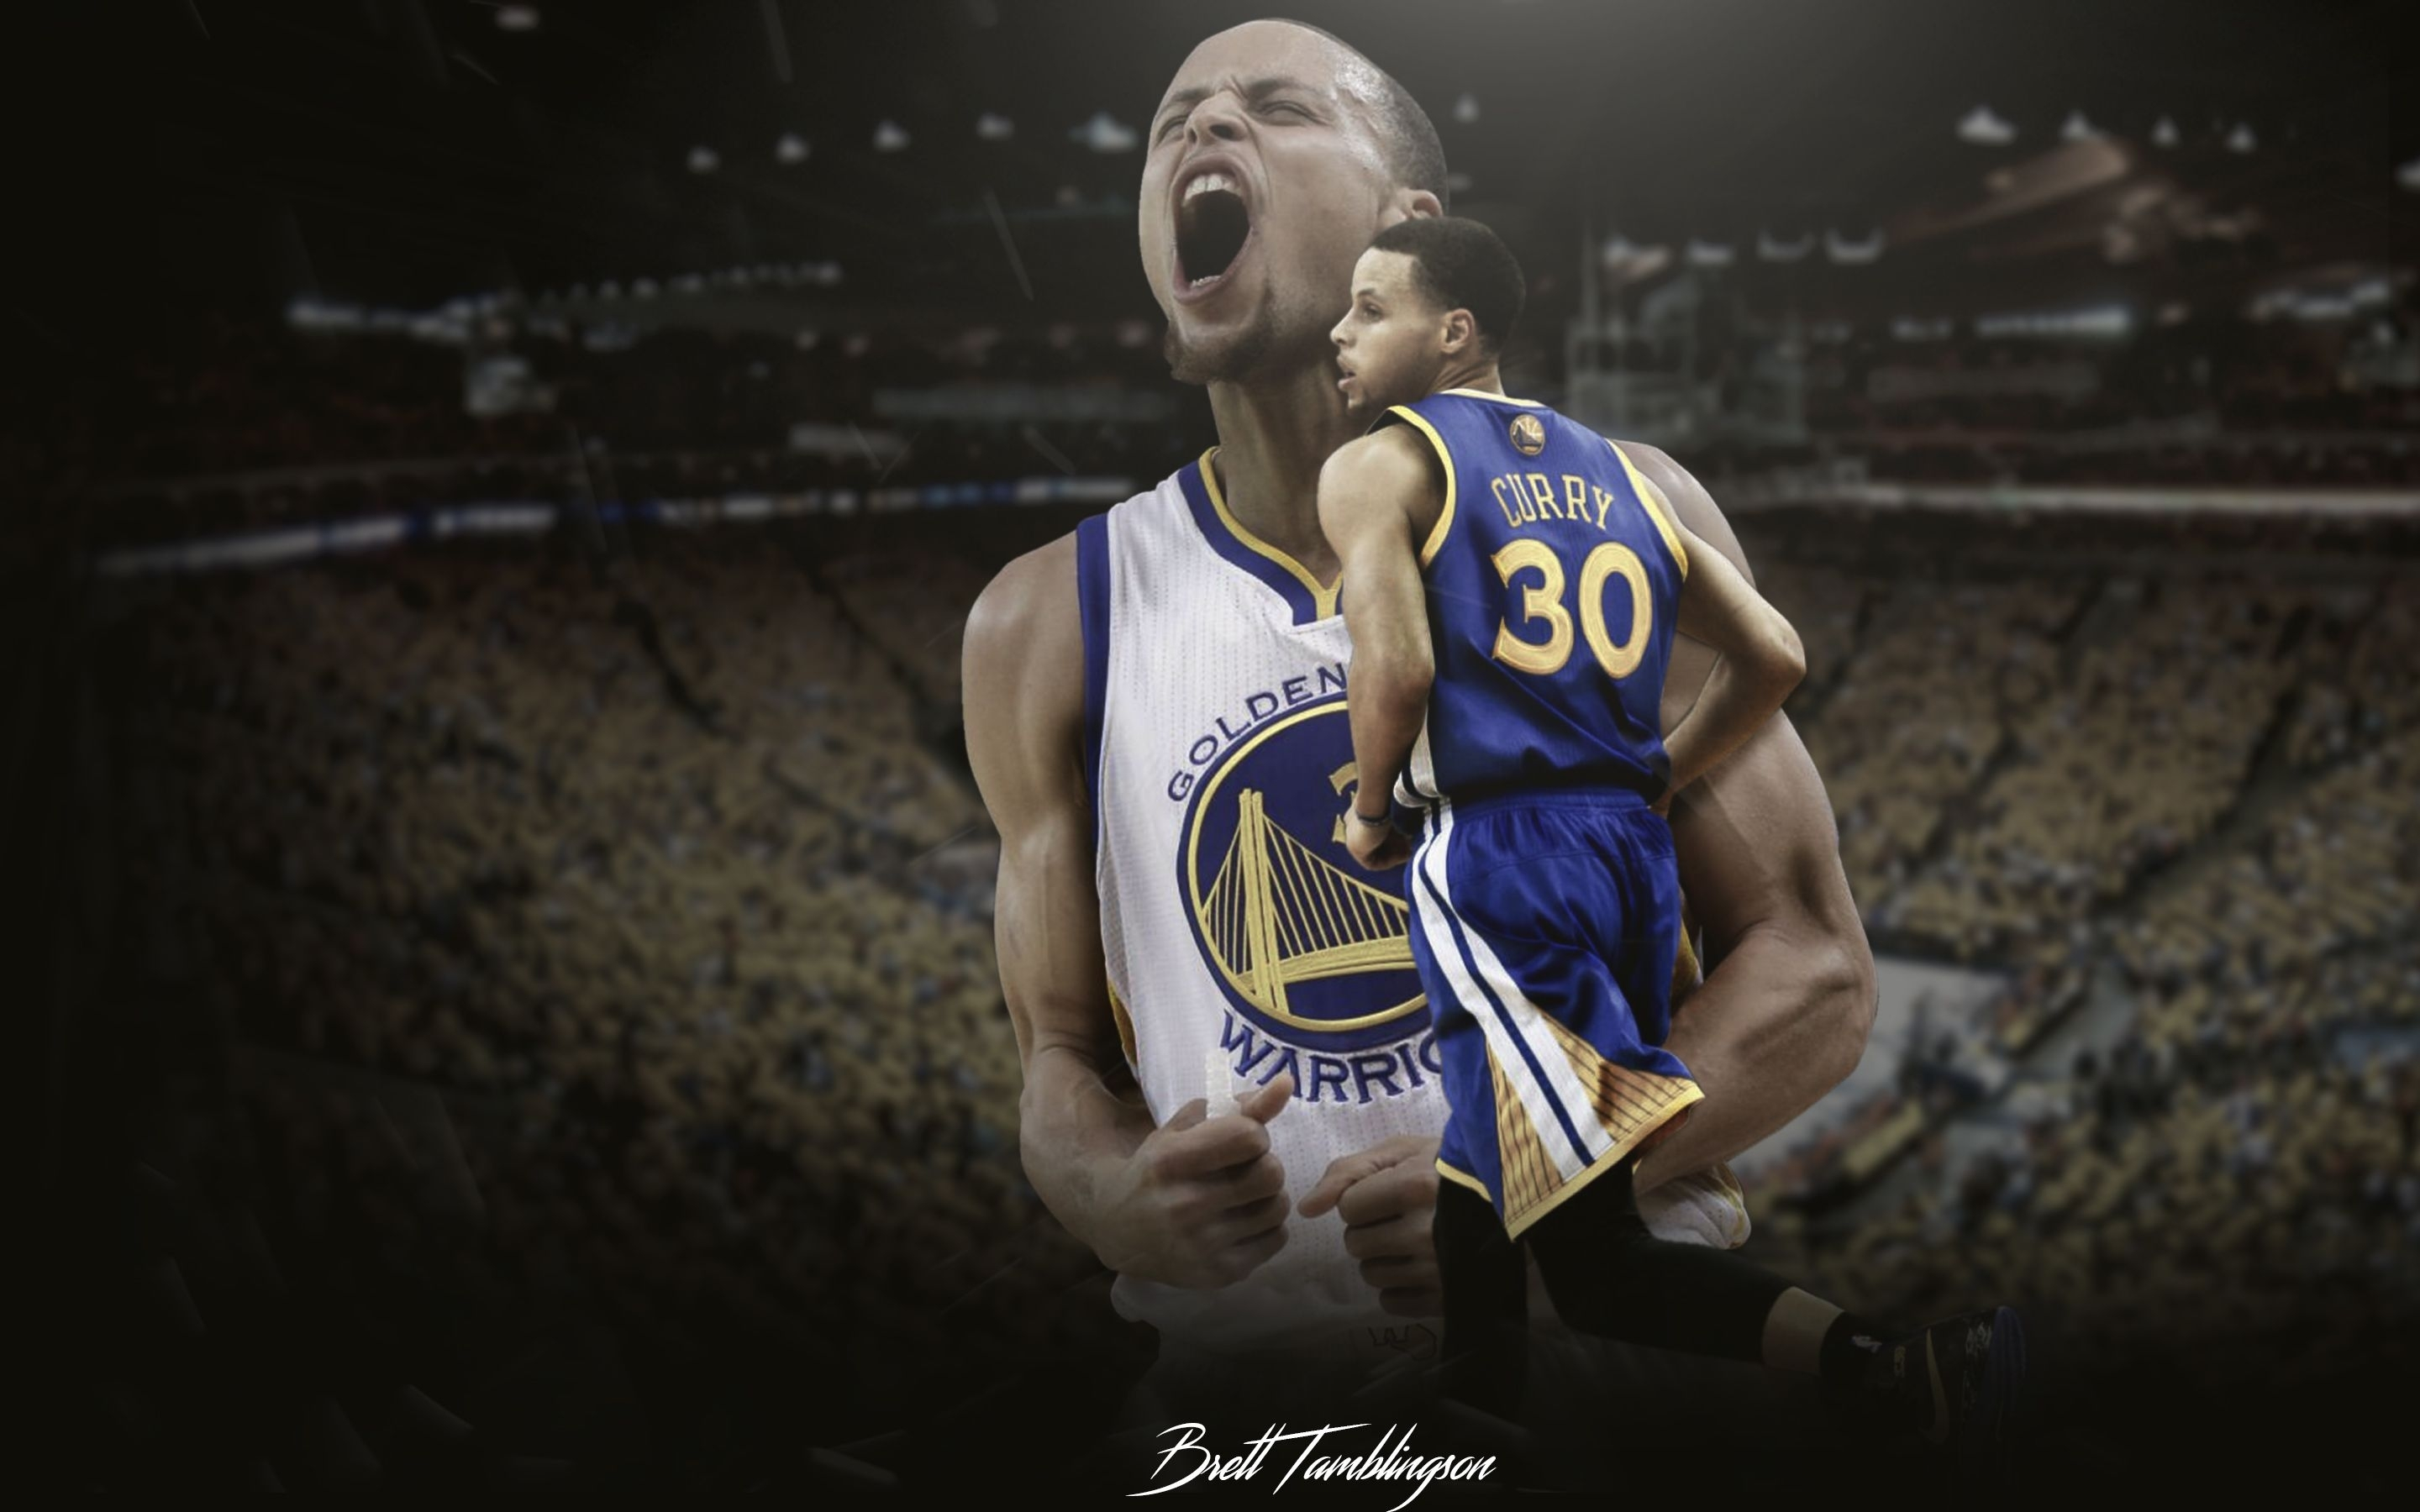 steph curry 3 hand wallpaper - google search | diglitboard